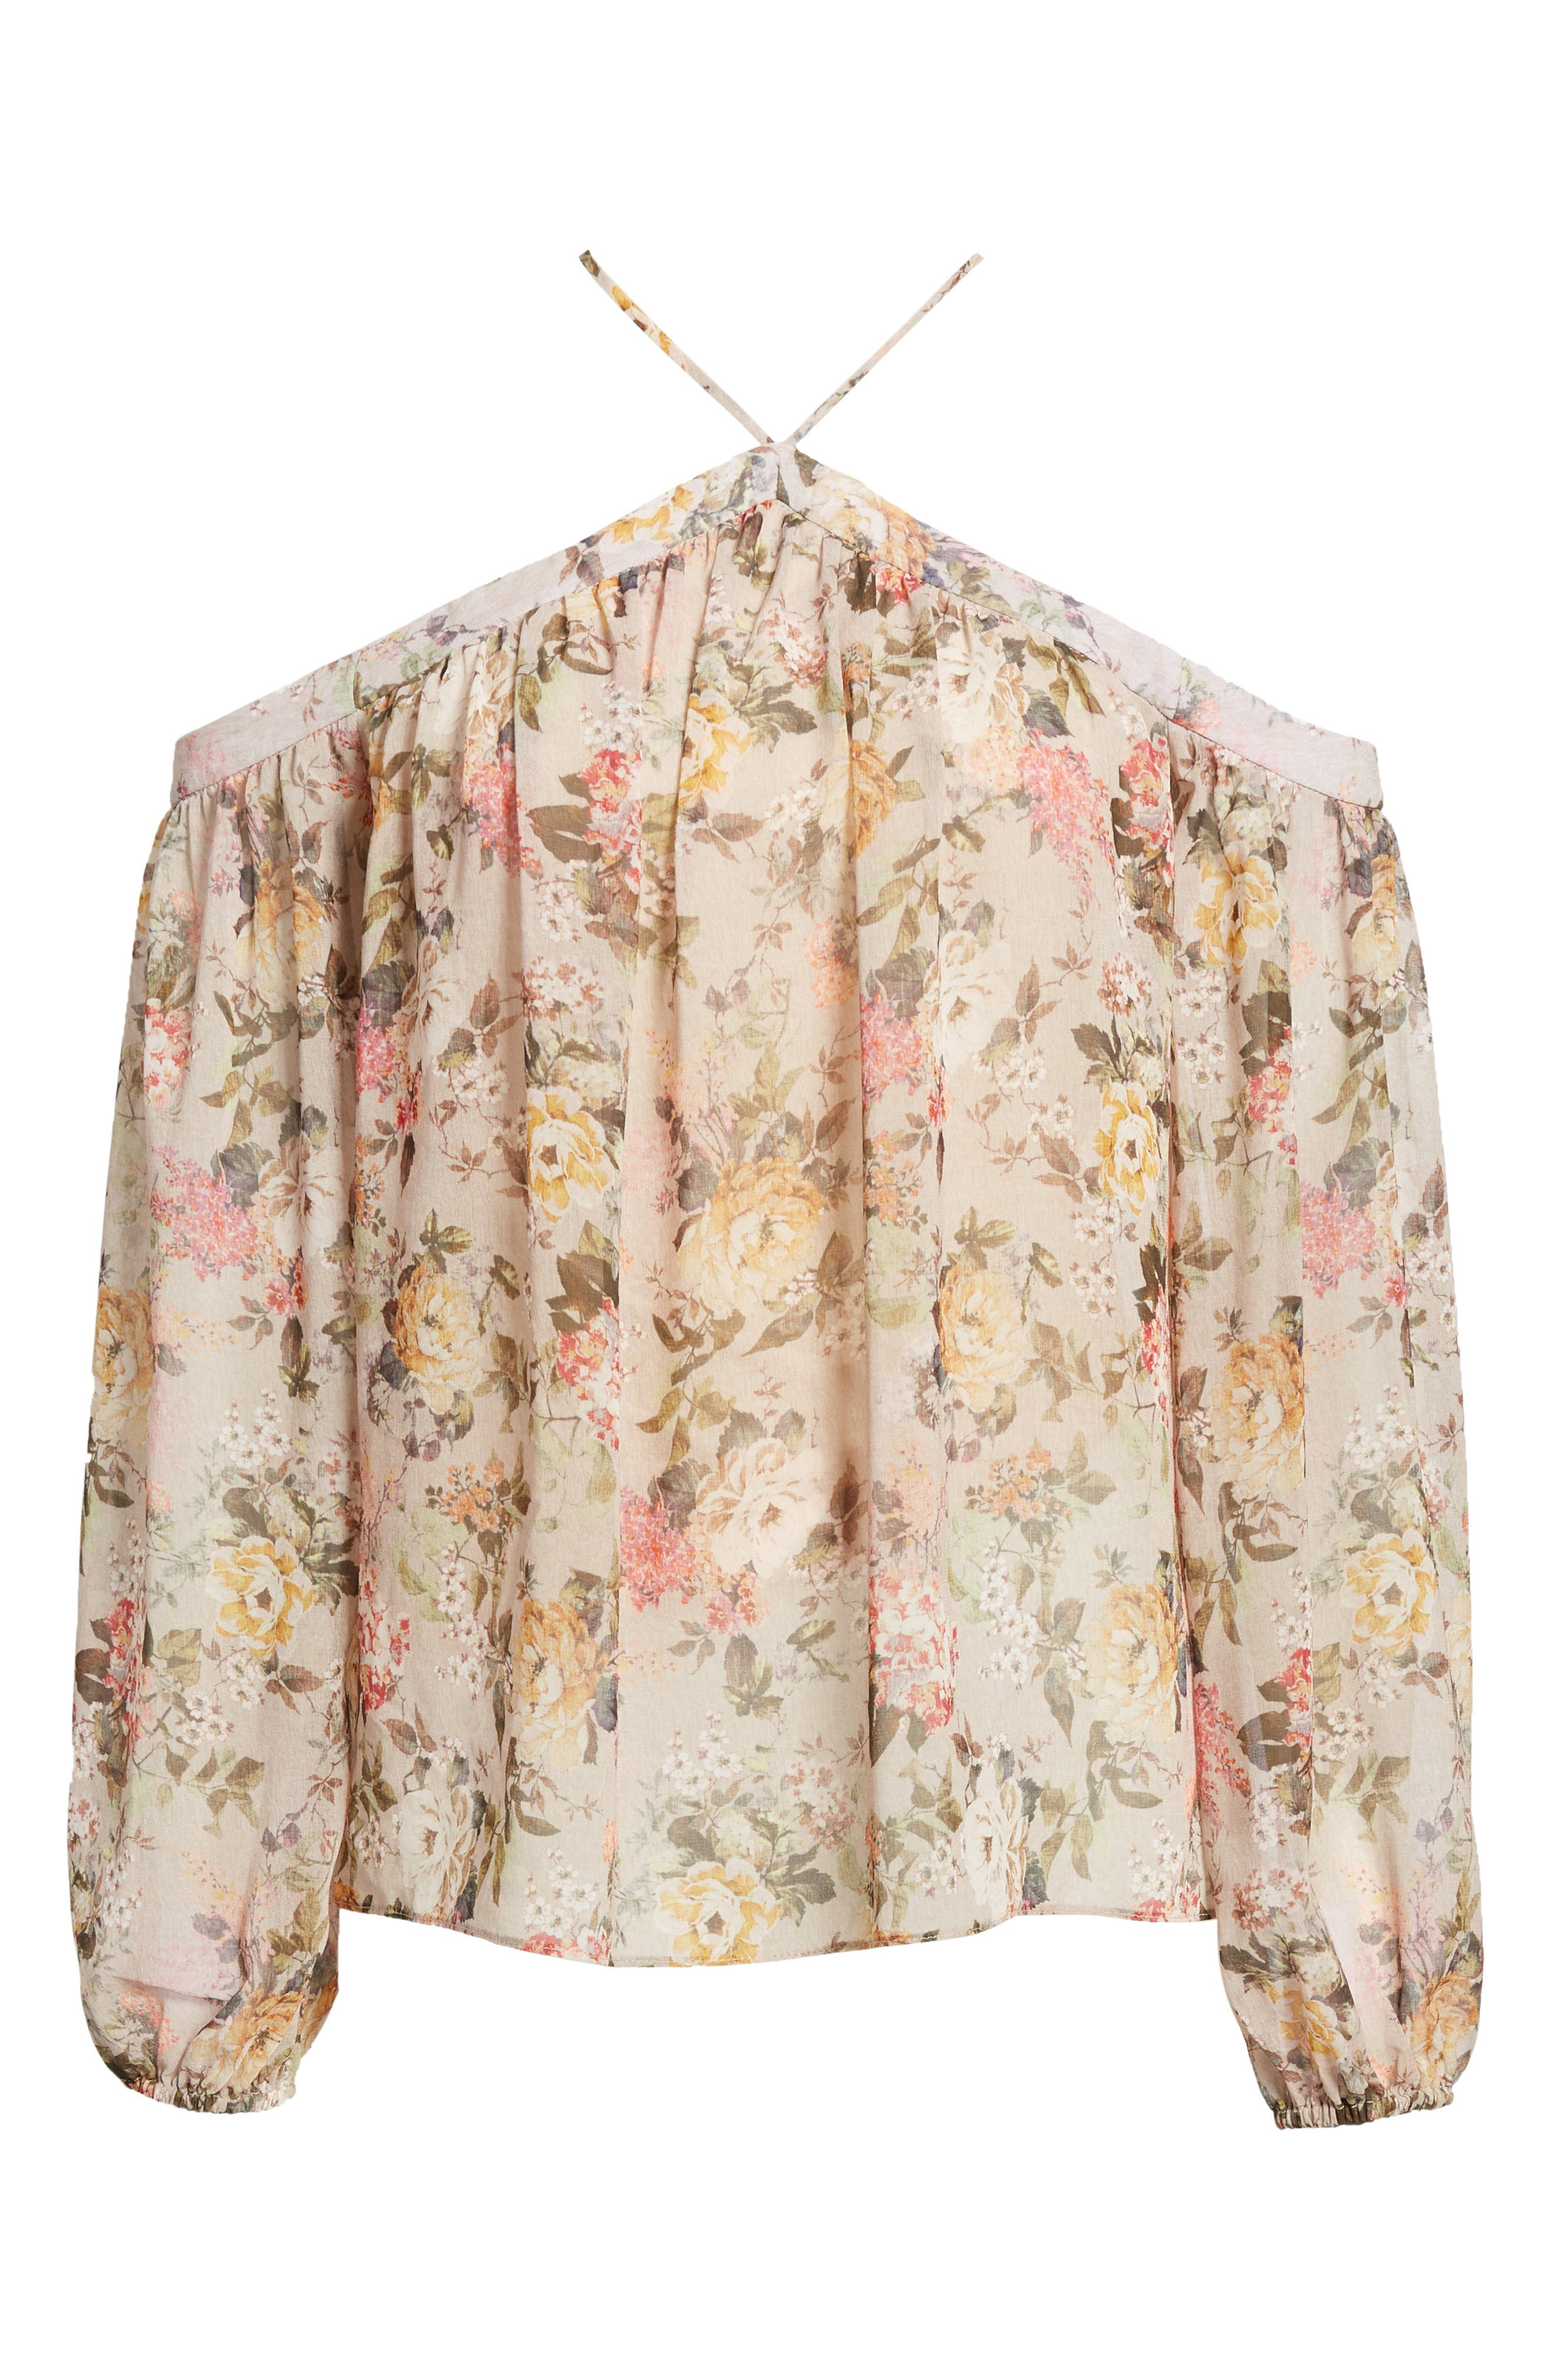 Inamorata Blouse,                             Alternate thumbnail 6, color,                             Blush